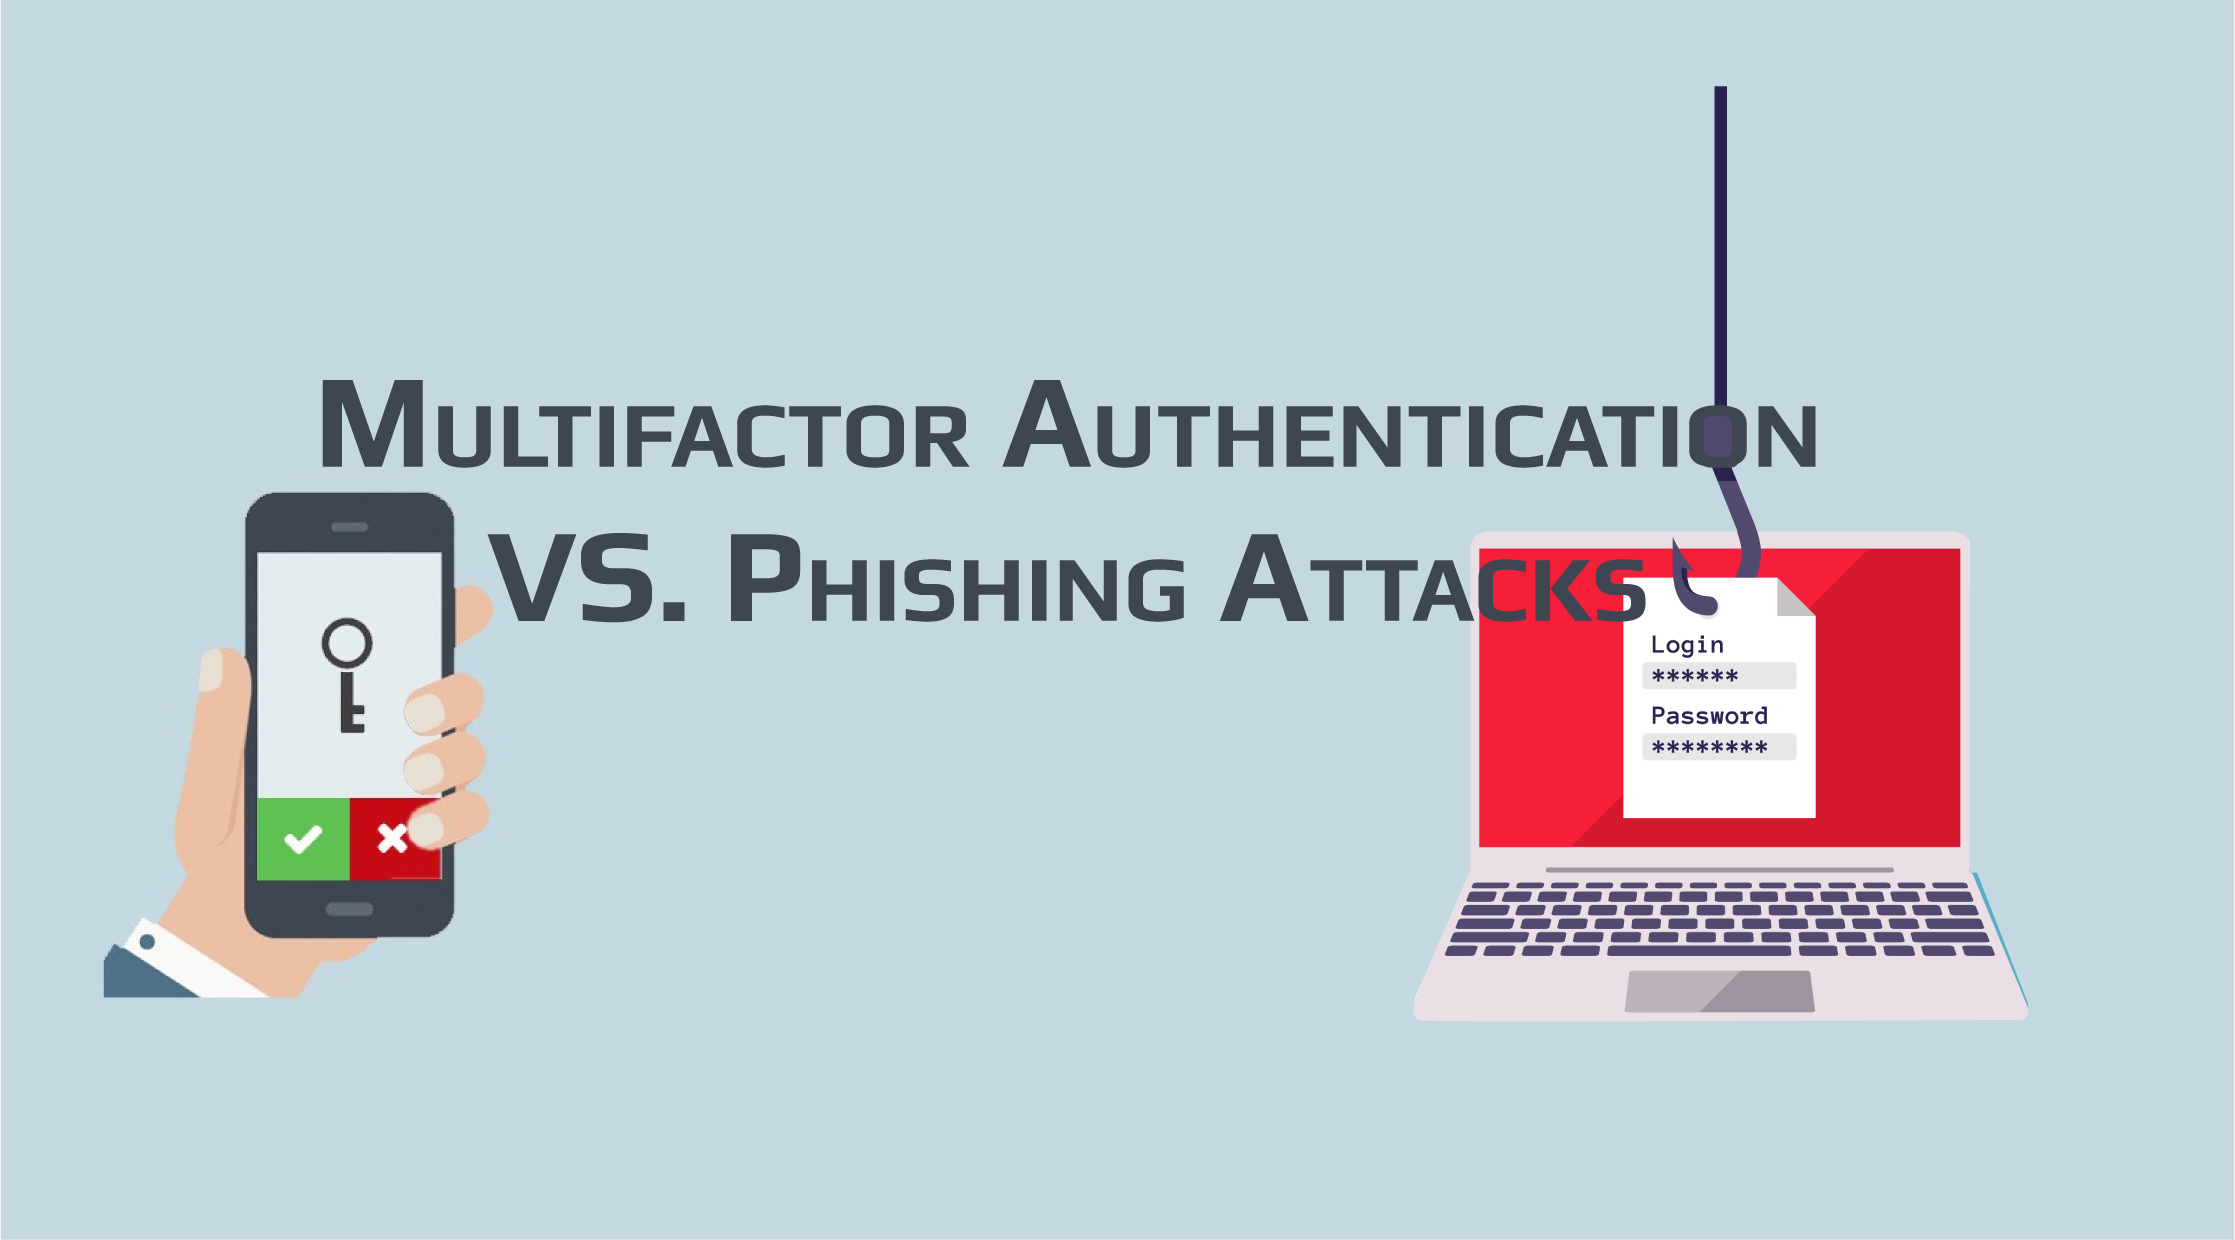 Multifactor Authentication Can't Stop ALL Cyber Attacks